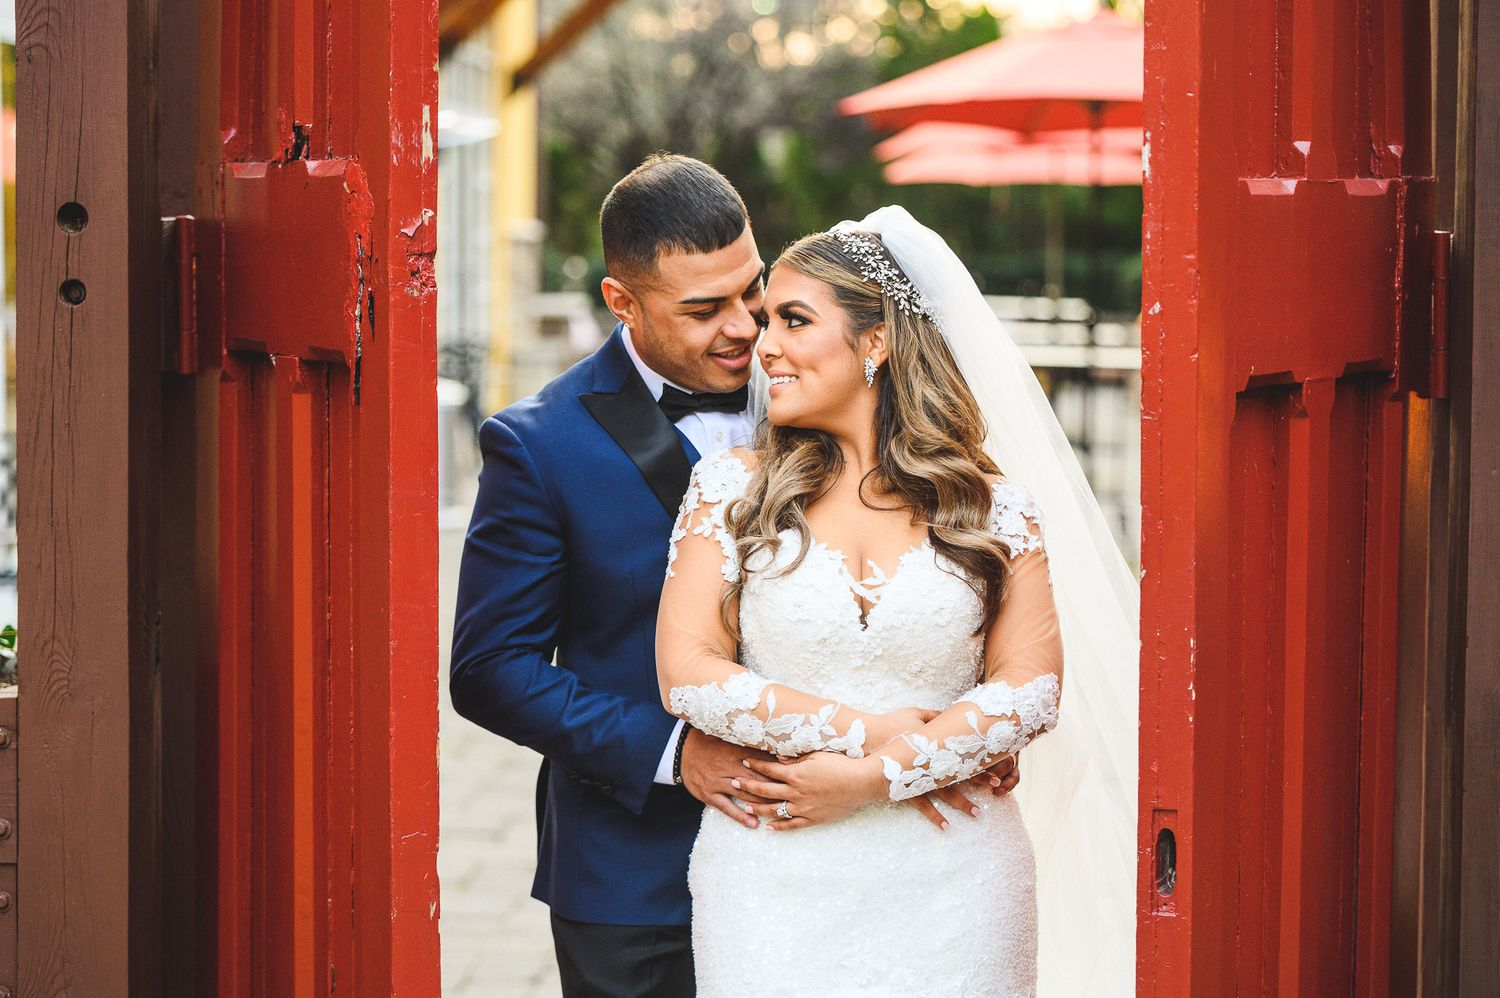 bride and groom portrait at the red doors at stone house